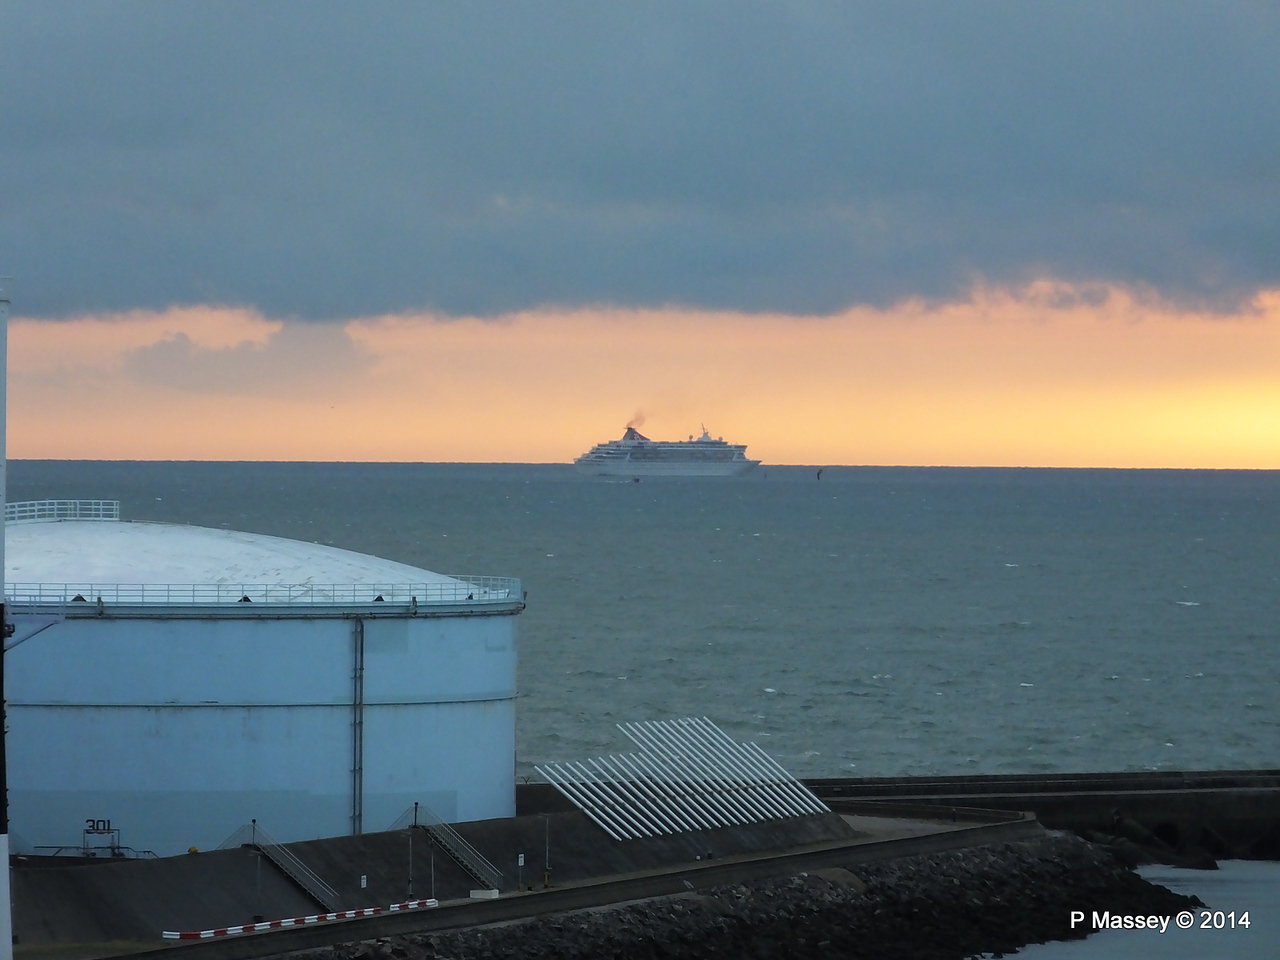 BALMORAL Passing Le Havre from Rouen to La Pallice PDM 06-10-2014 18-15-50